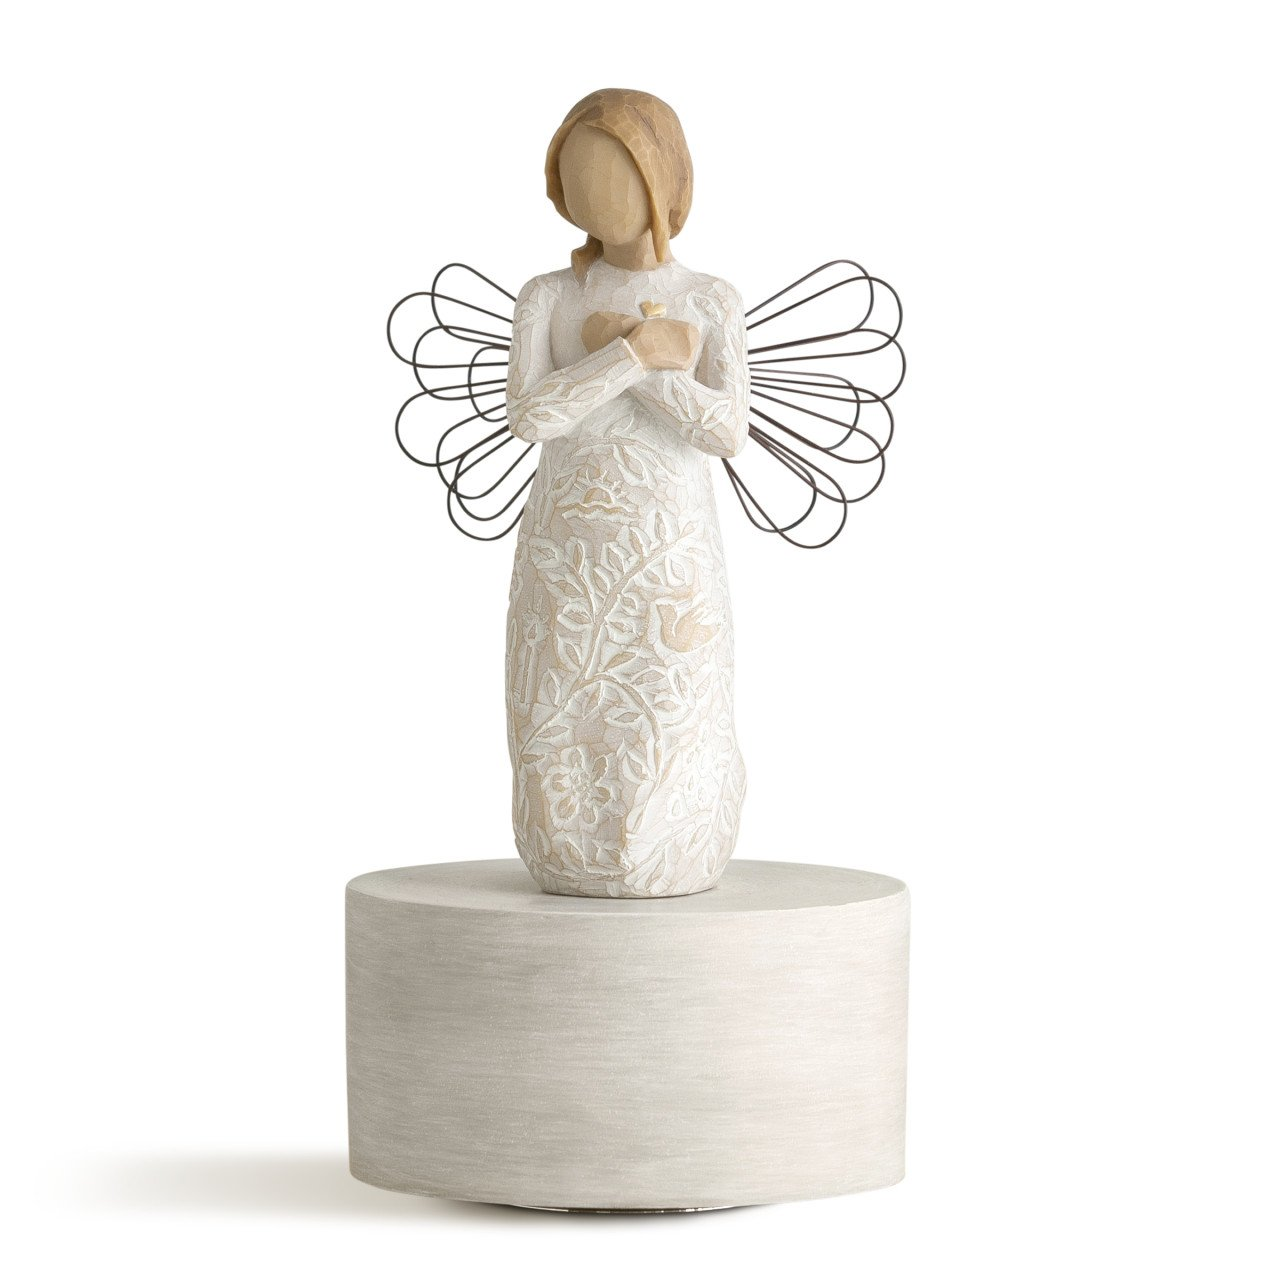 Willow Tree Remembrance Musical, sculpted hand-painted musical figure by Willow Tree